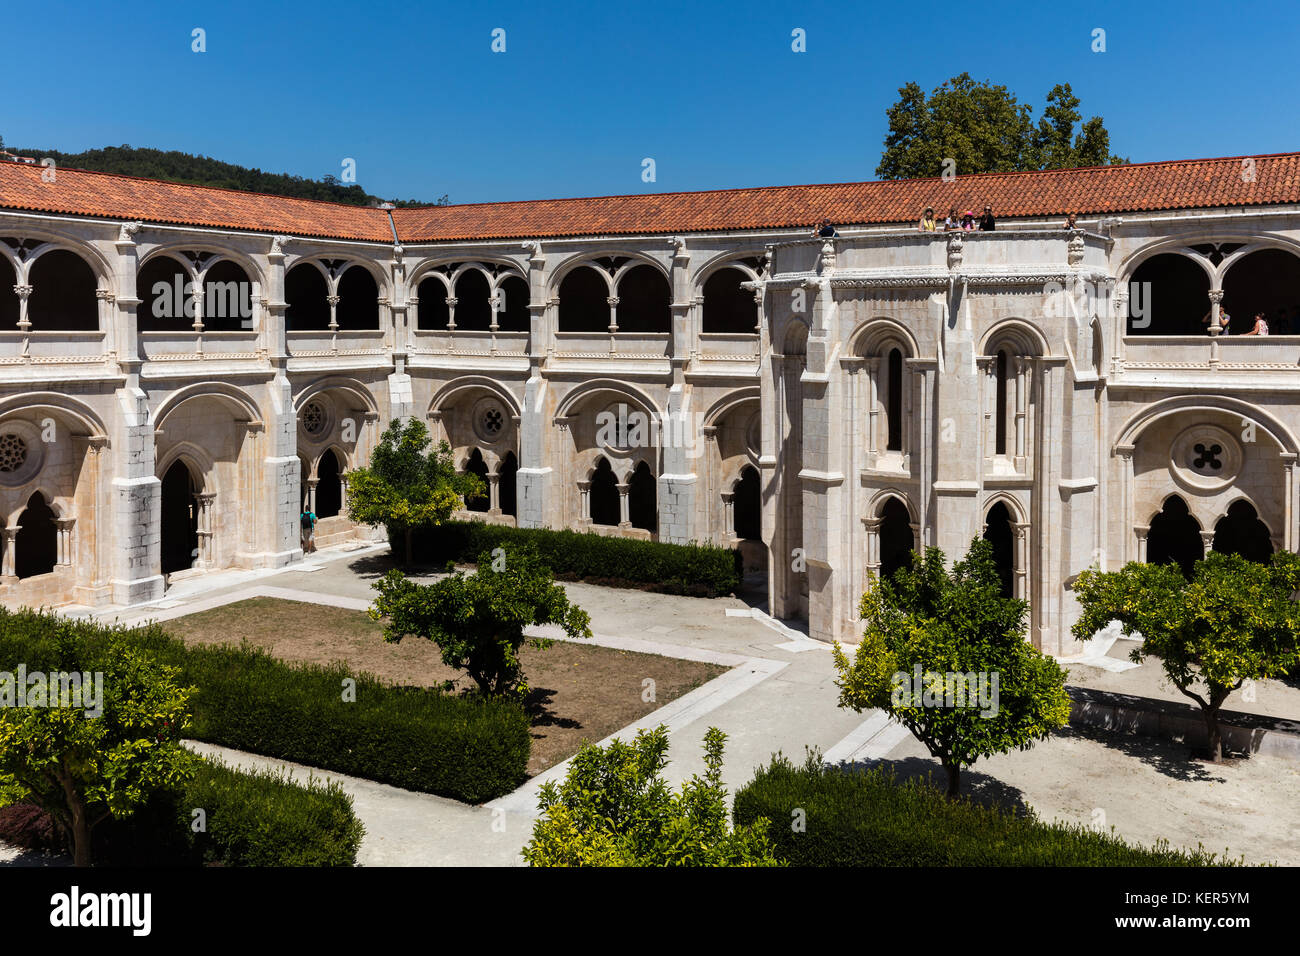 Cloister of the medieval Alcobaca Monastery, the first truly Gothic building in Portugal - Stock Image